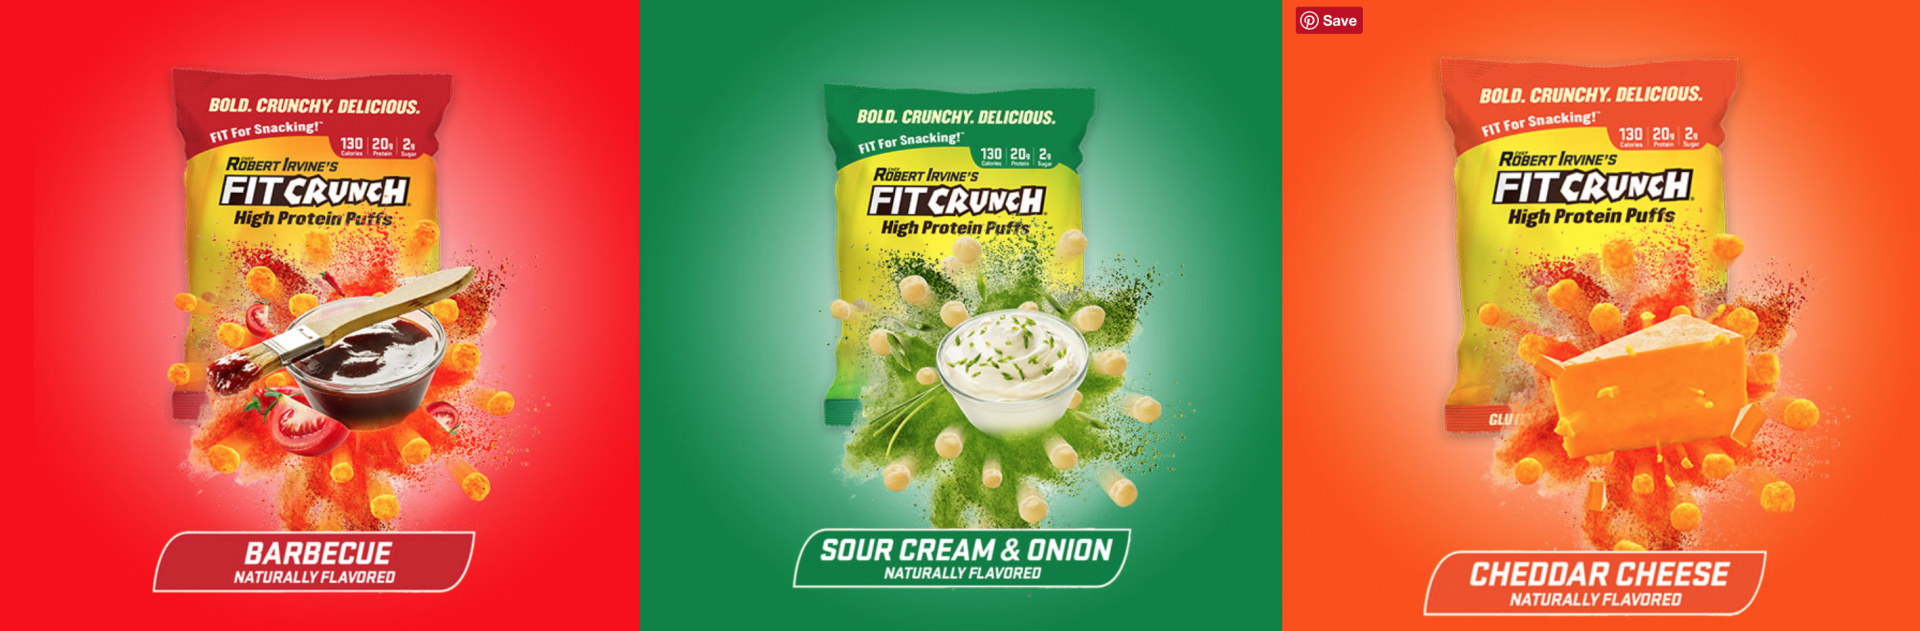 Not Your Typical Puff Piece: Robert Introduces New FITCRUNCH Protein Puffs, And The Way We Snack Will Never Be The Same - Robert Irvine